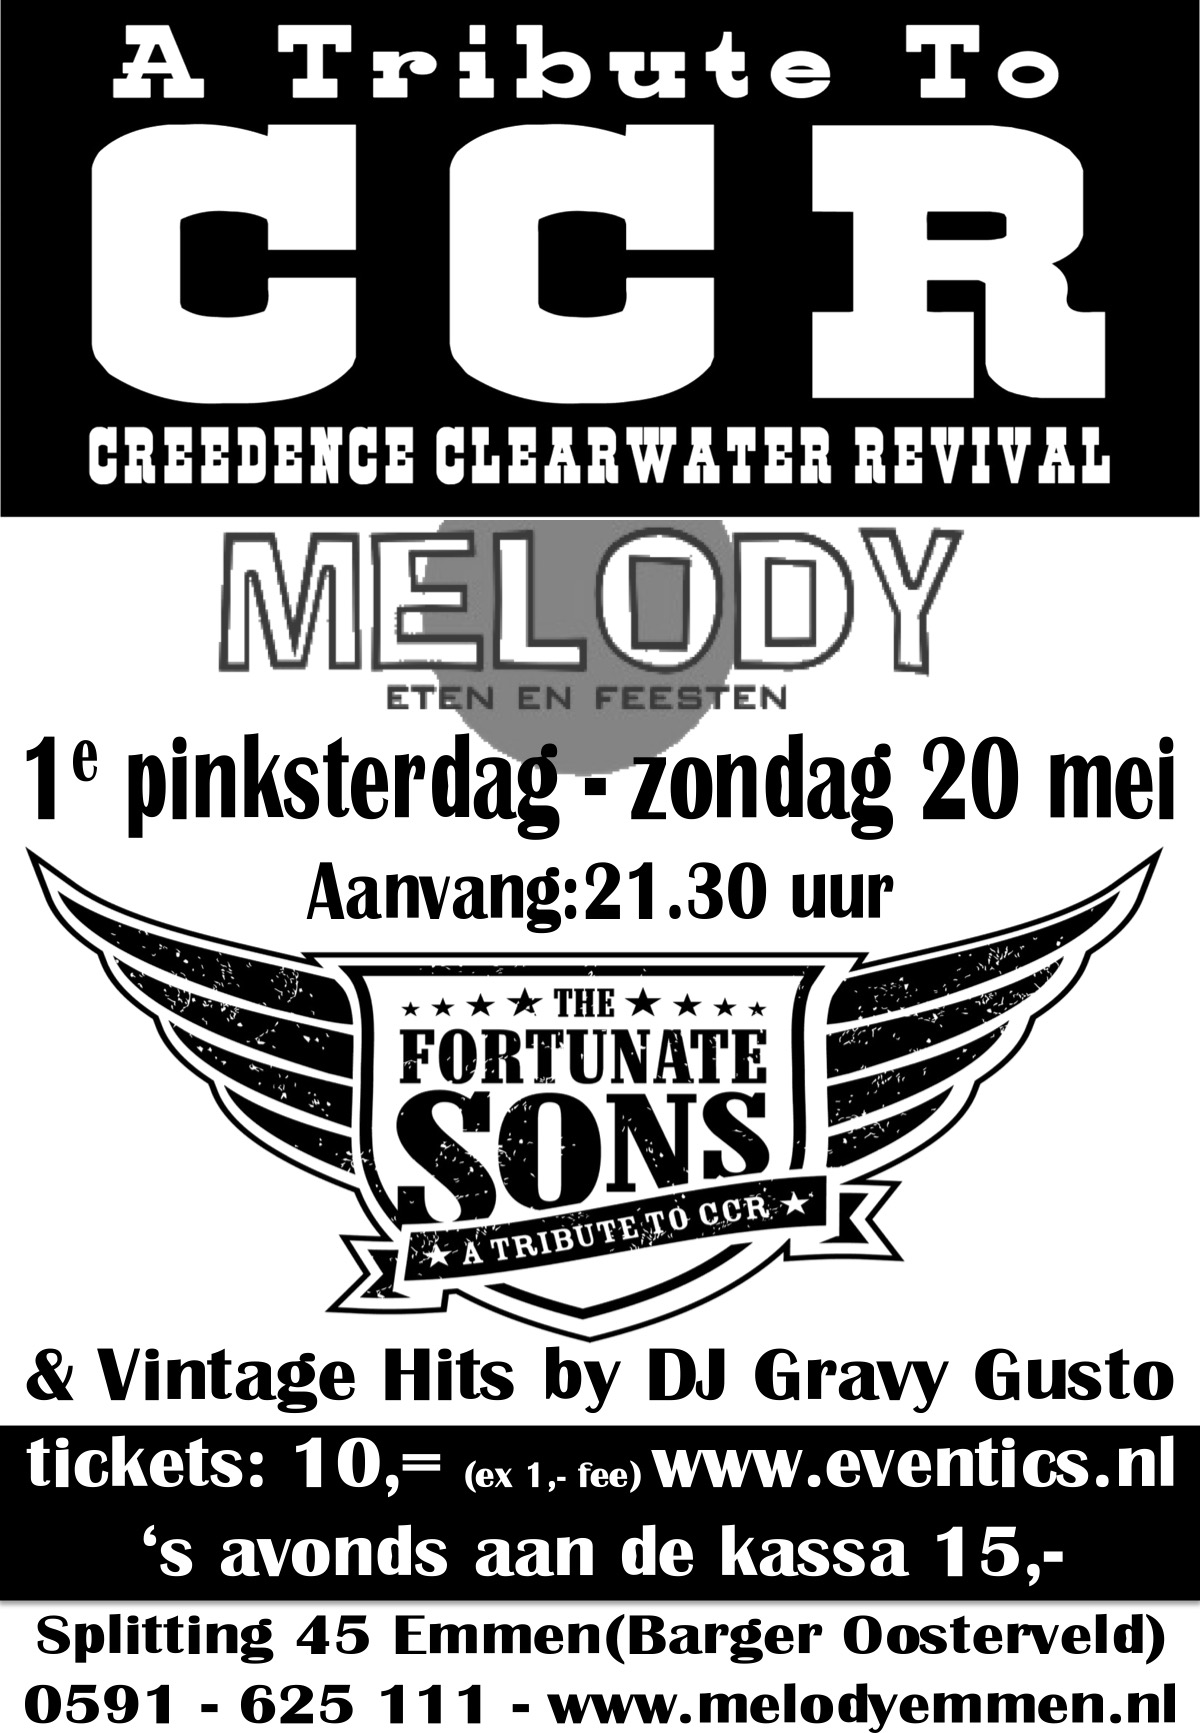 The Fortunate Sons - Tribute to CCR